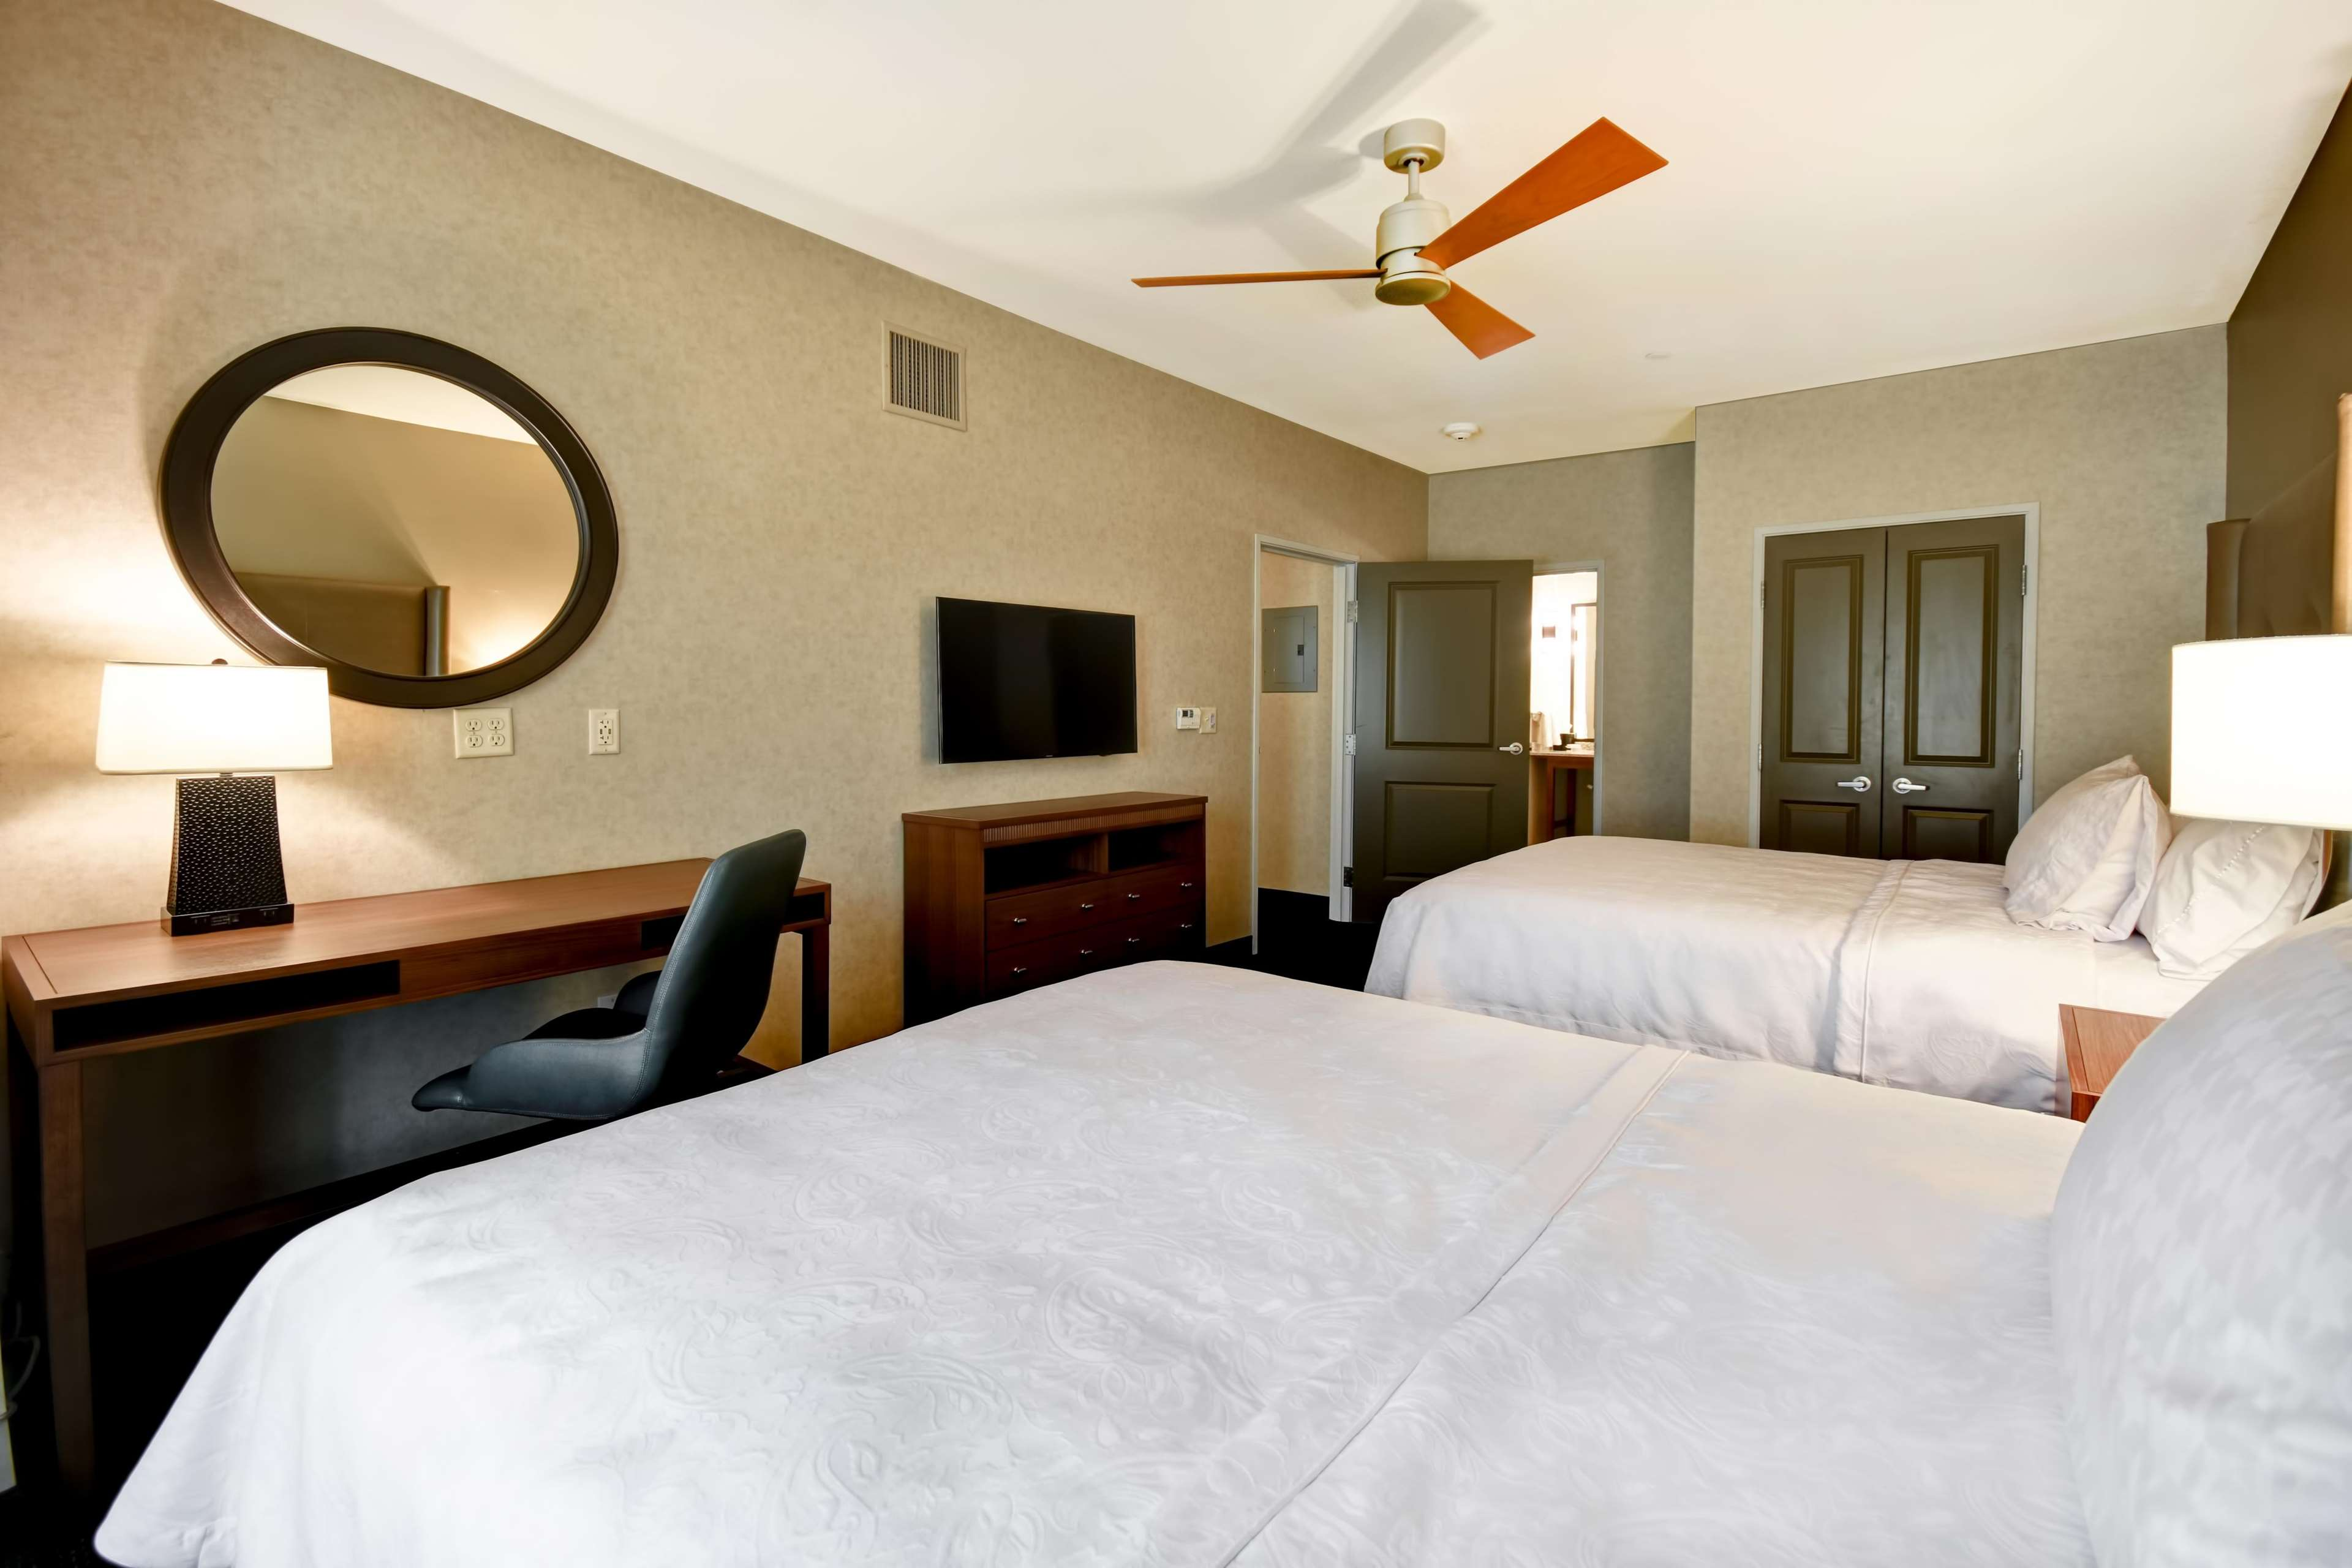 Homewood Suites by Hilton Pleasant Hill Concord image 11